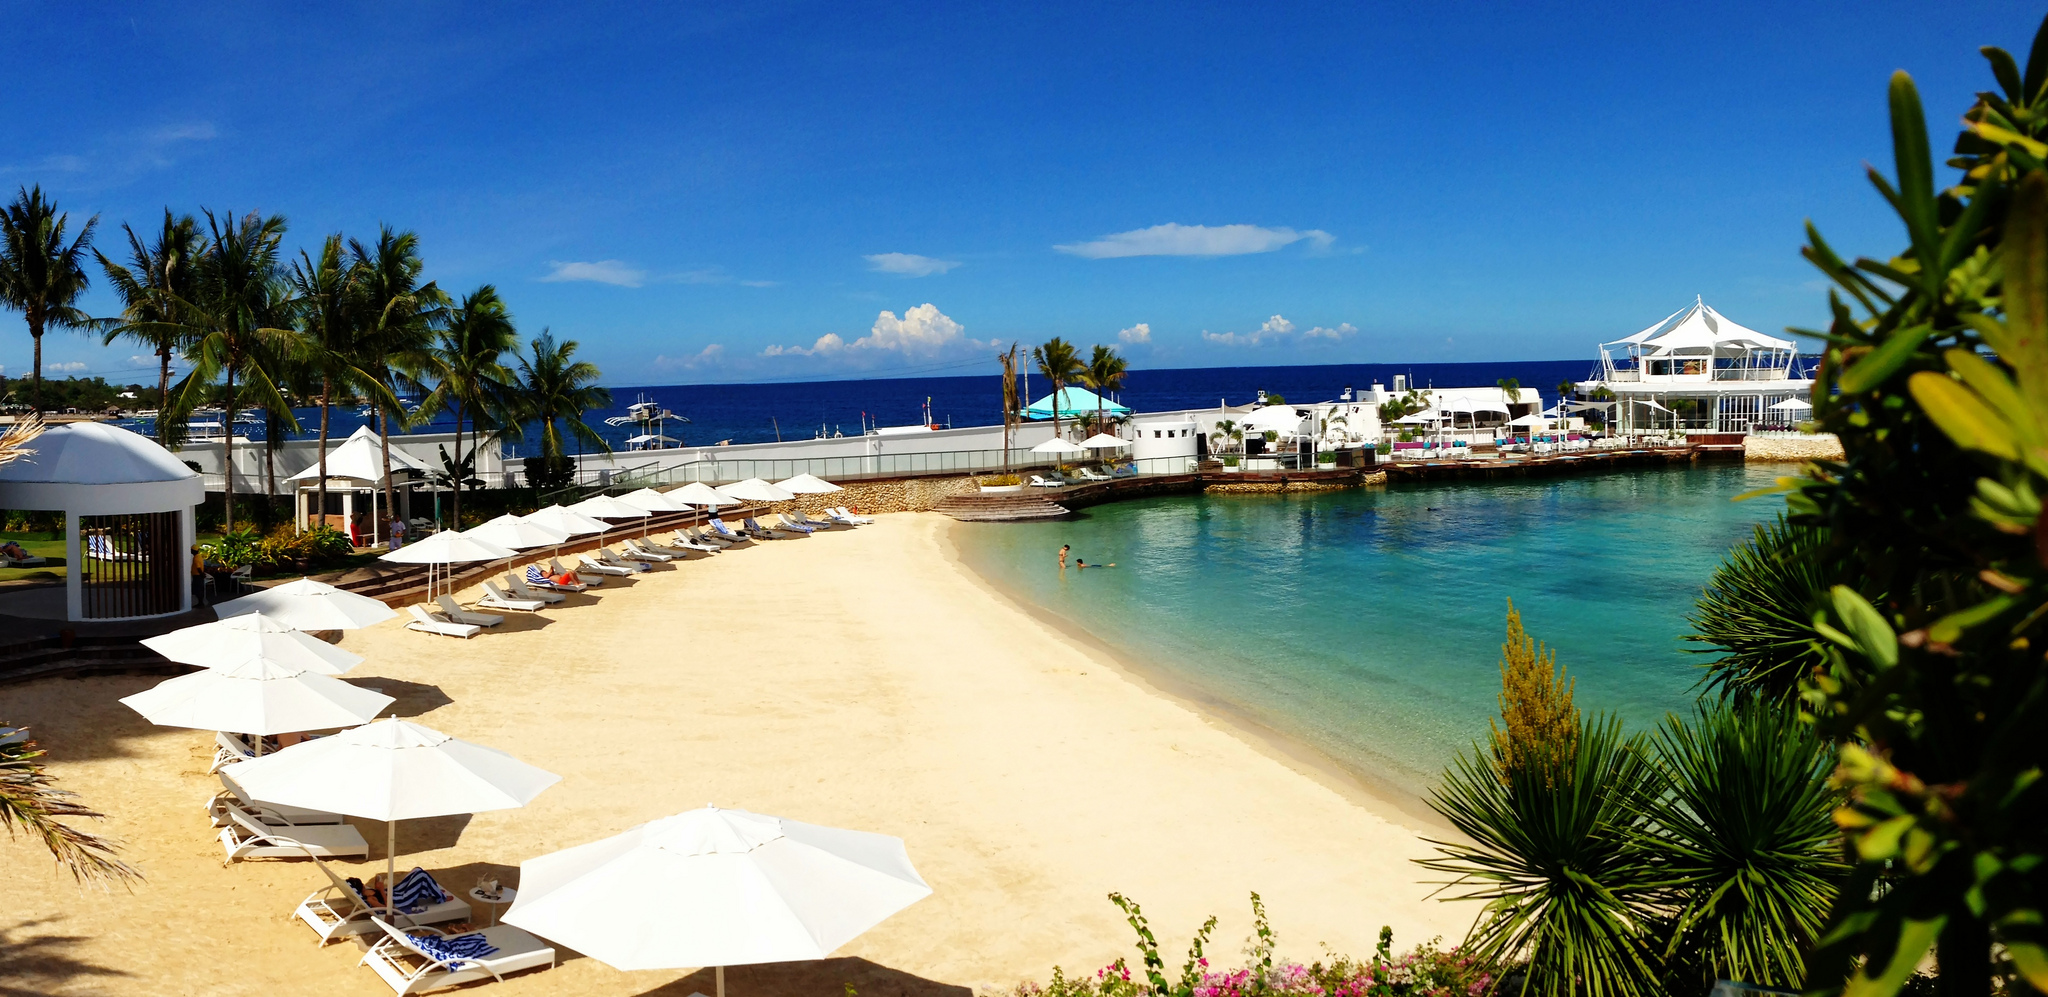 Mactan Island Beach Resort Cebu